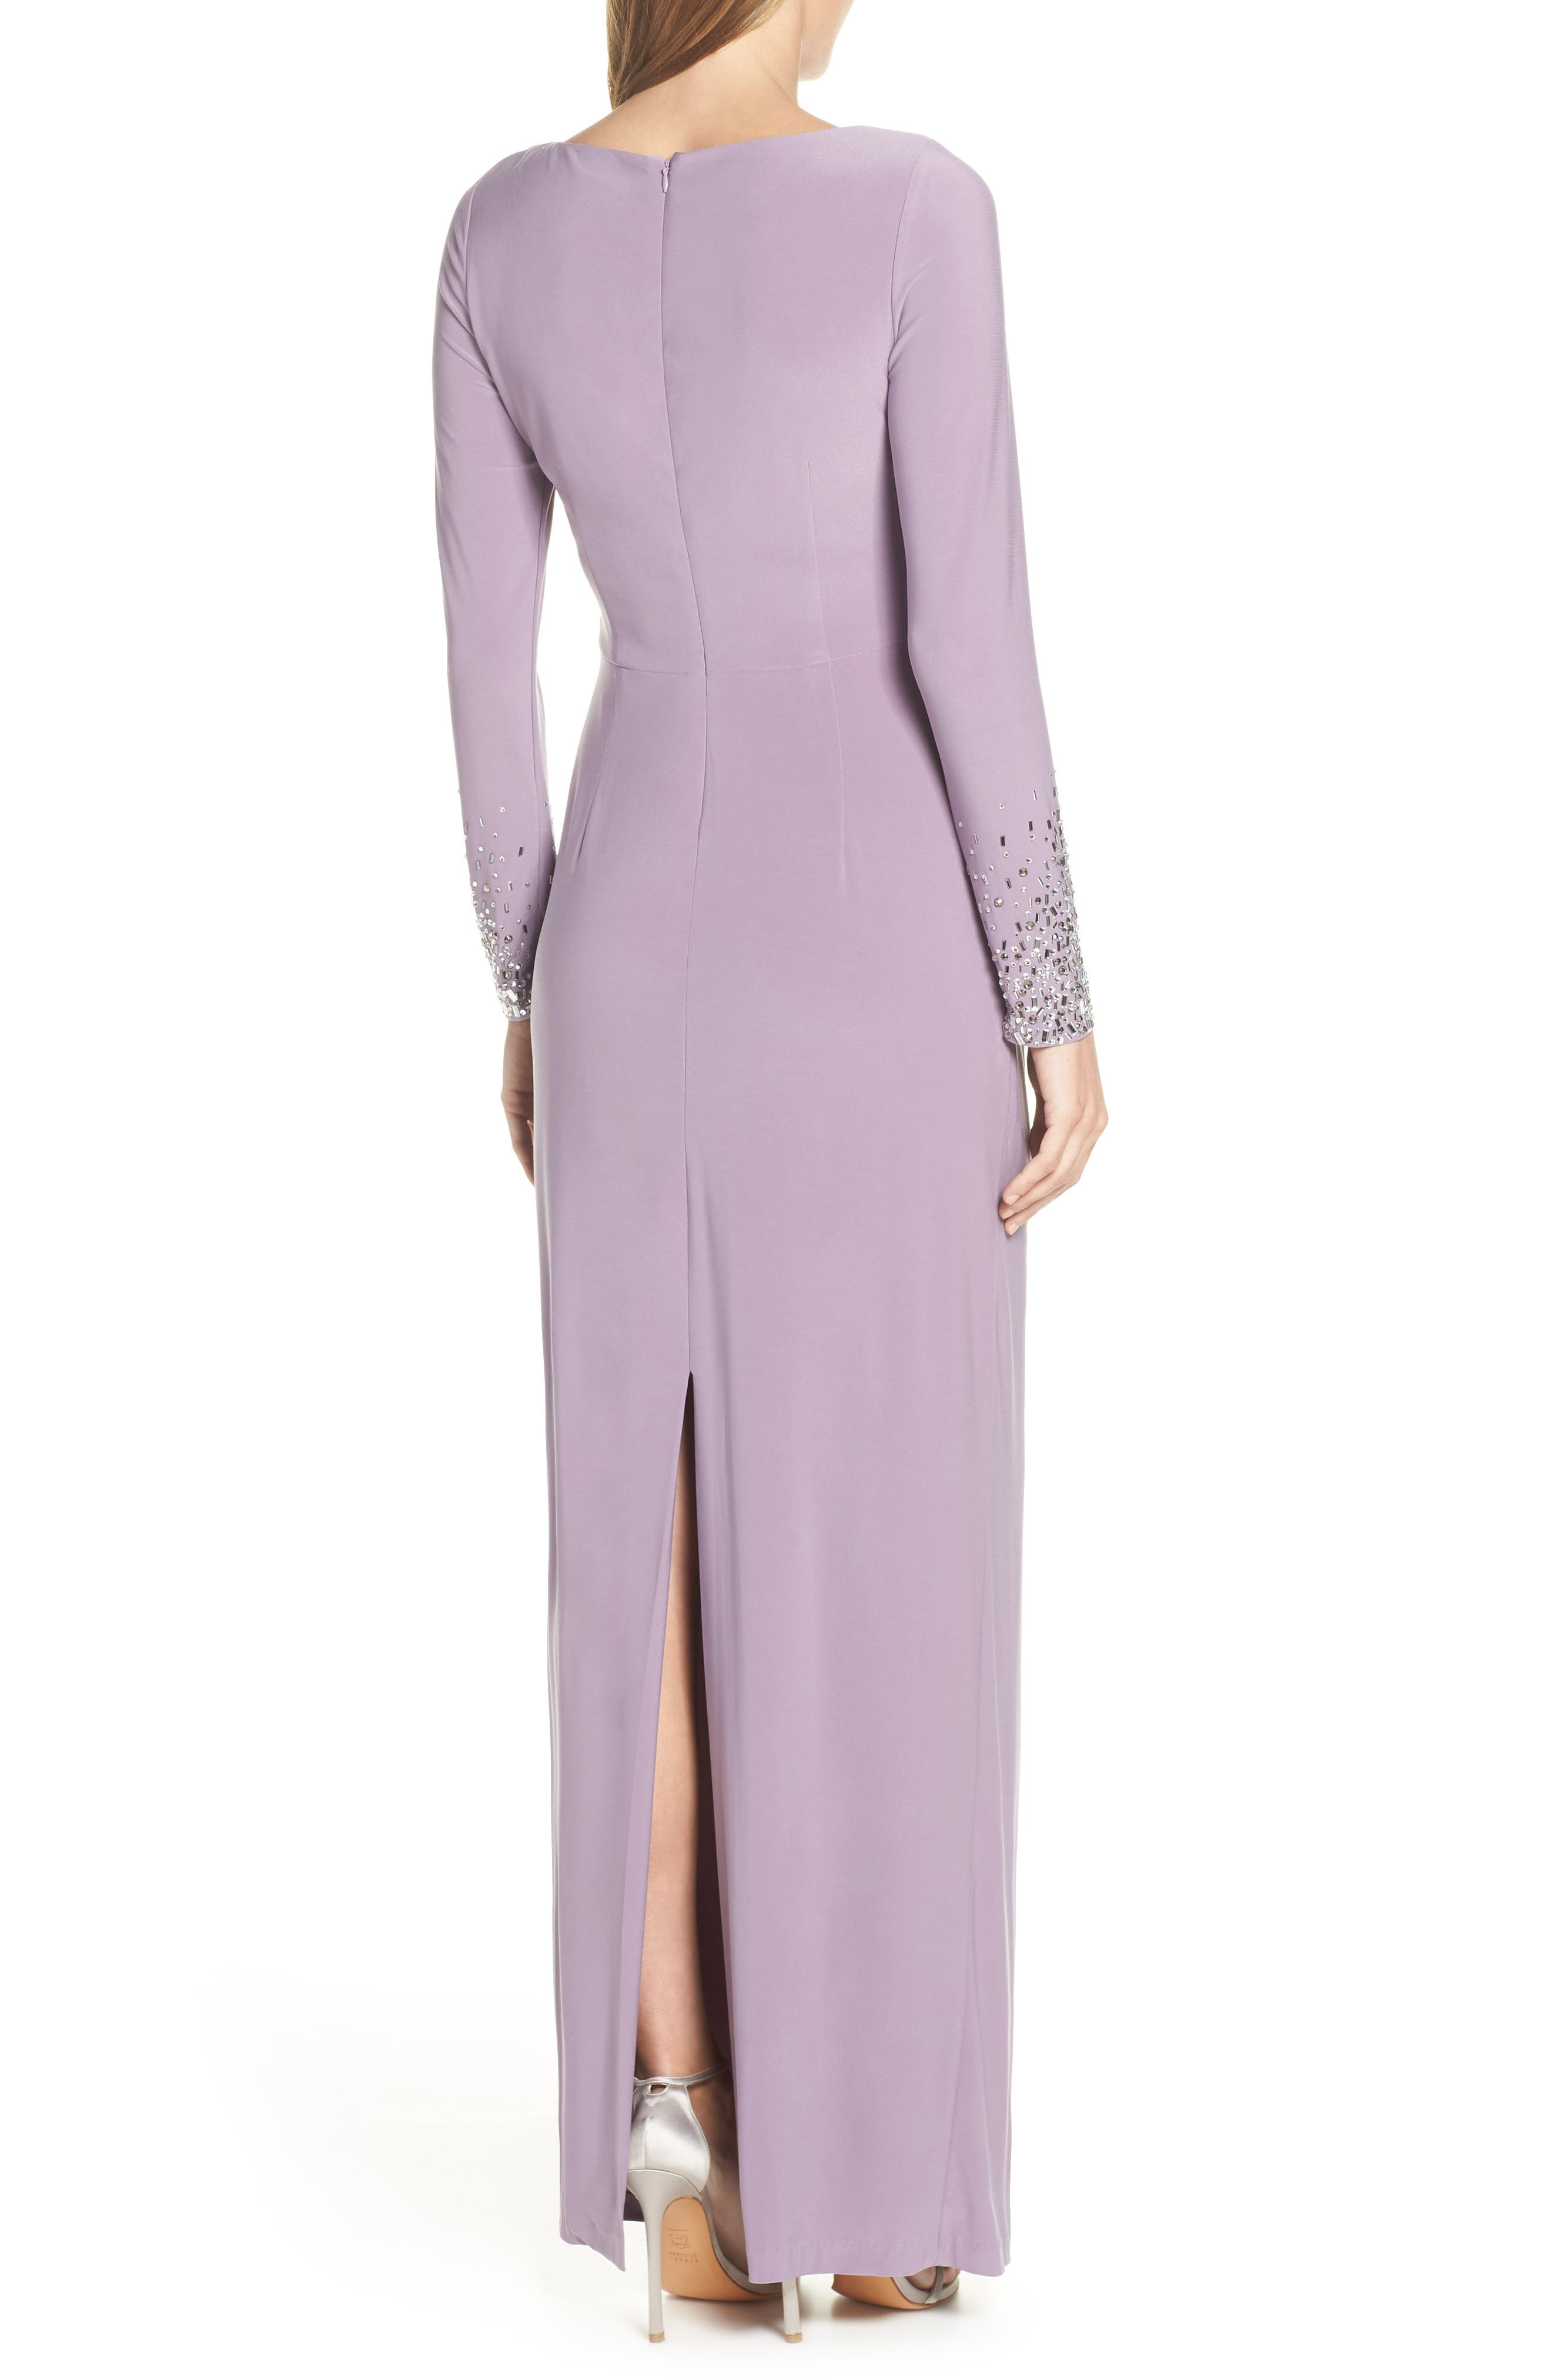 VINCE CAMUTO,                             Embellished Sleeve Ruched Evening Dress,                             Alternate thumbnail 2, color,                             LILAC